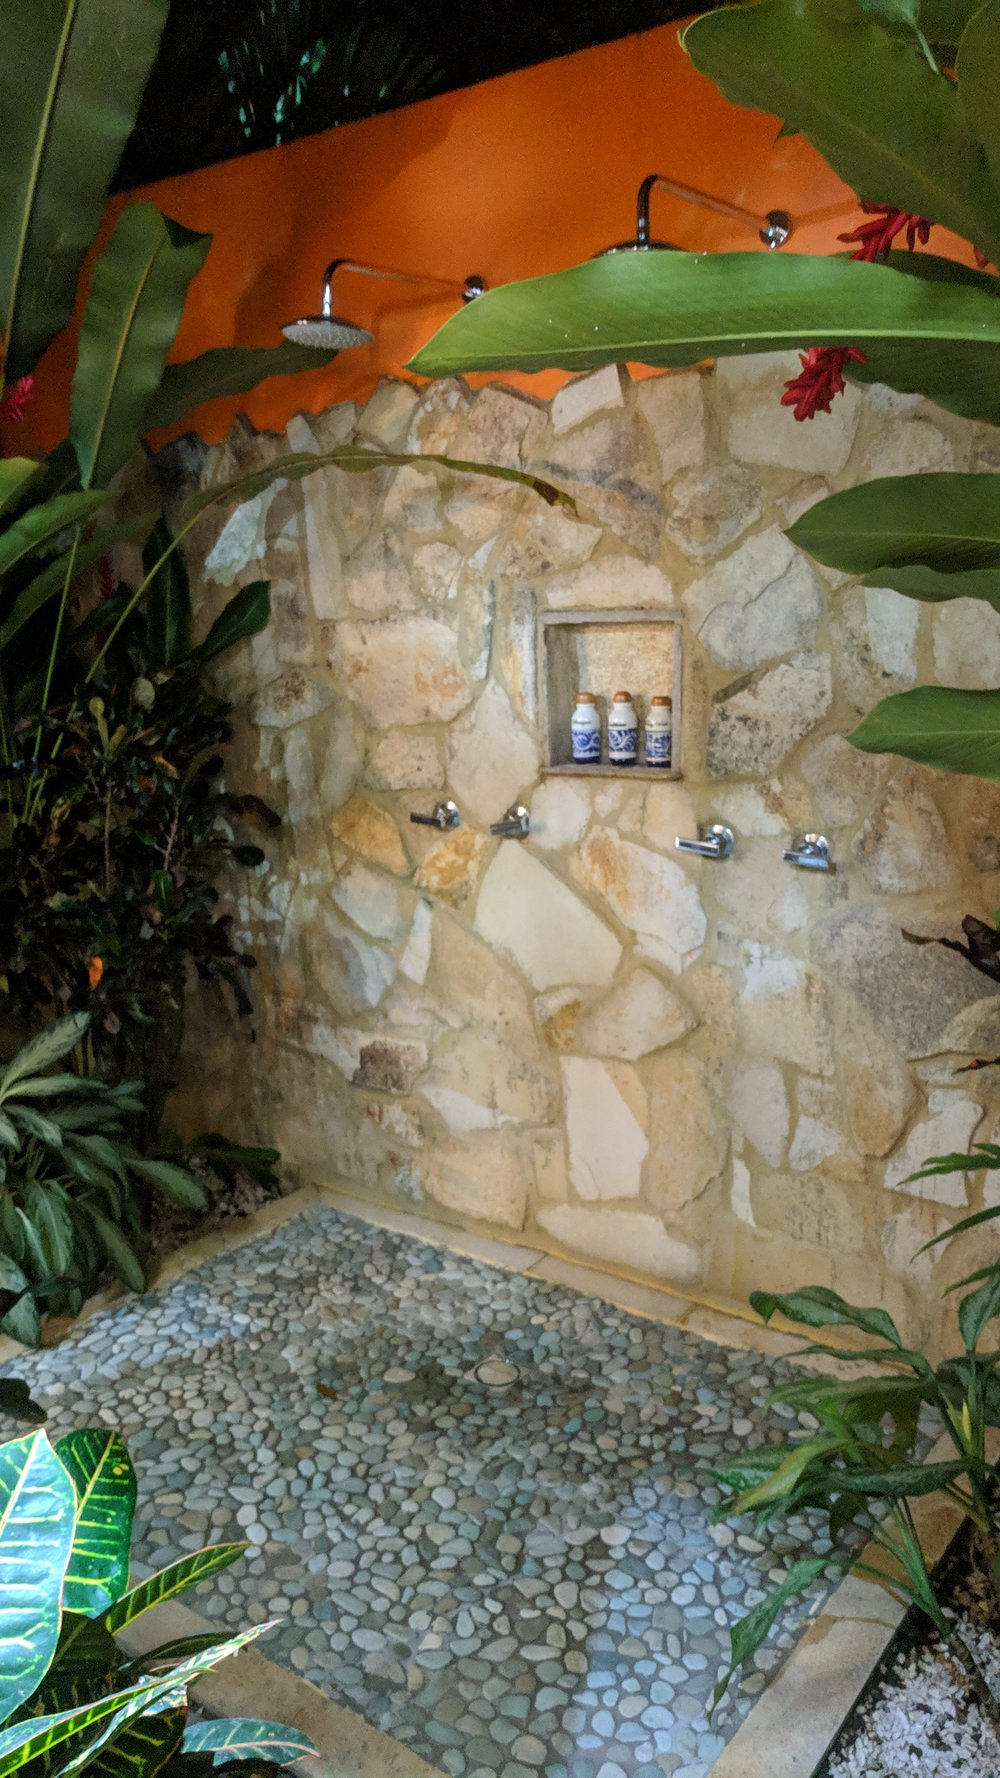 If the large indoor shower wasn't enough, there's also a large outdoor shower.